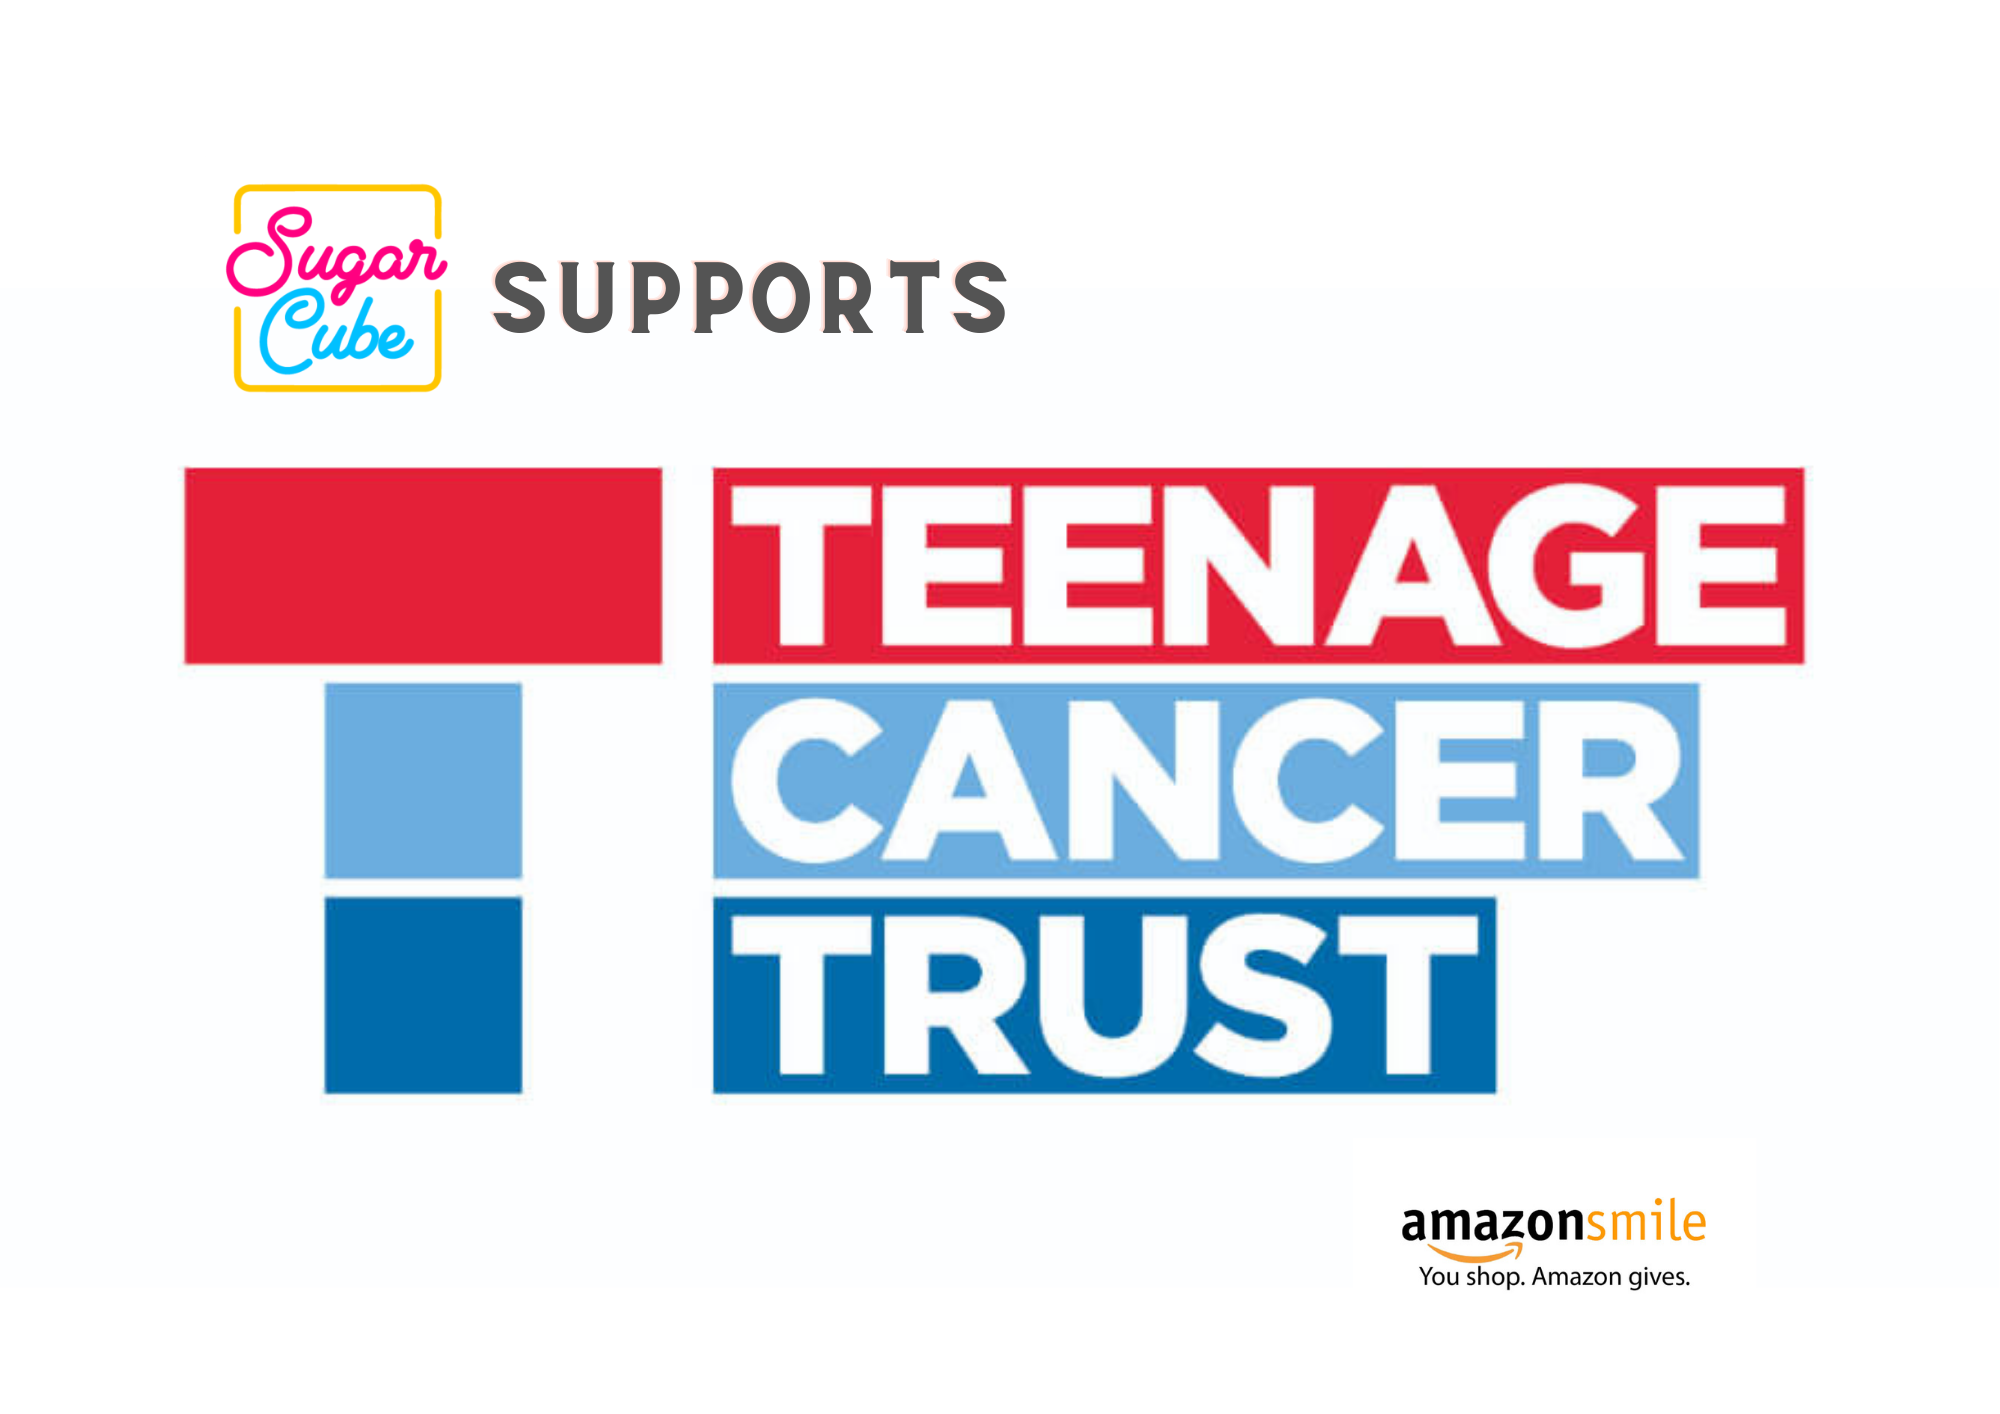 Teenage Cancer Trust